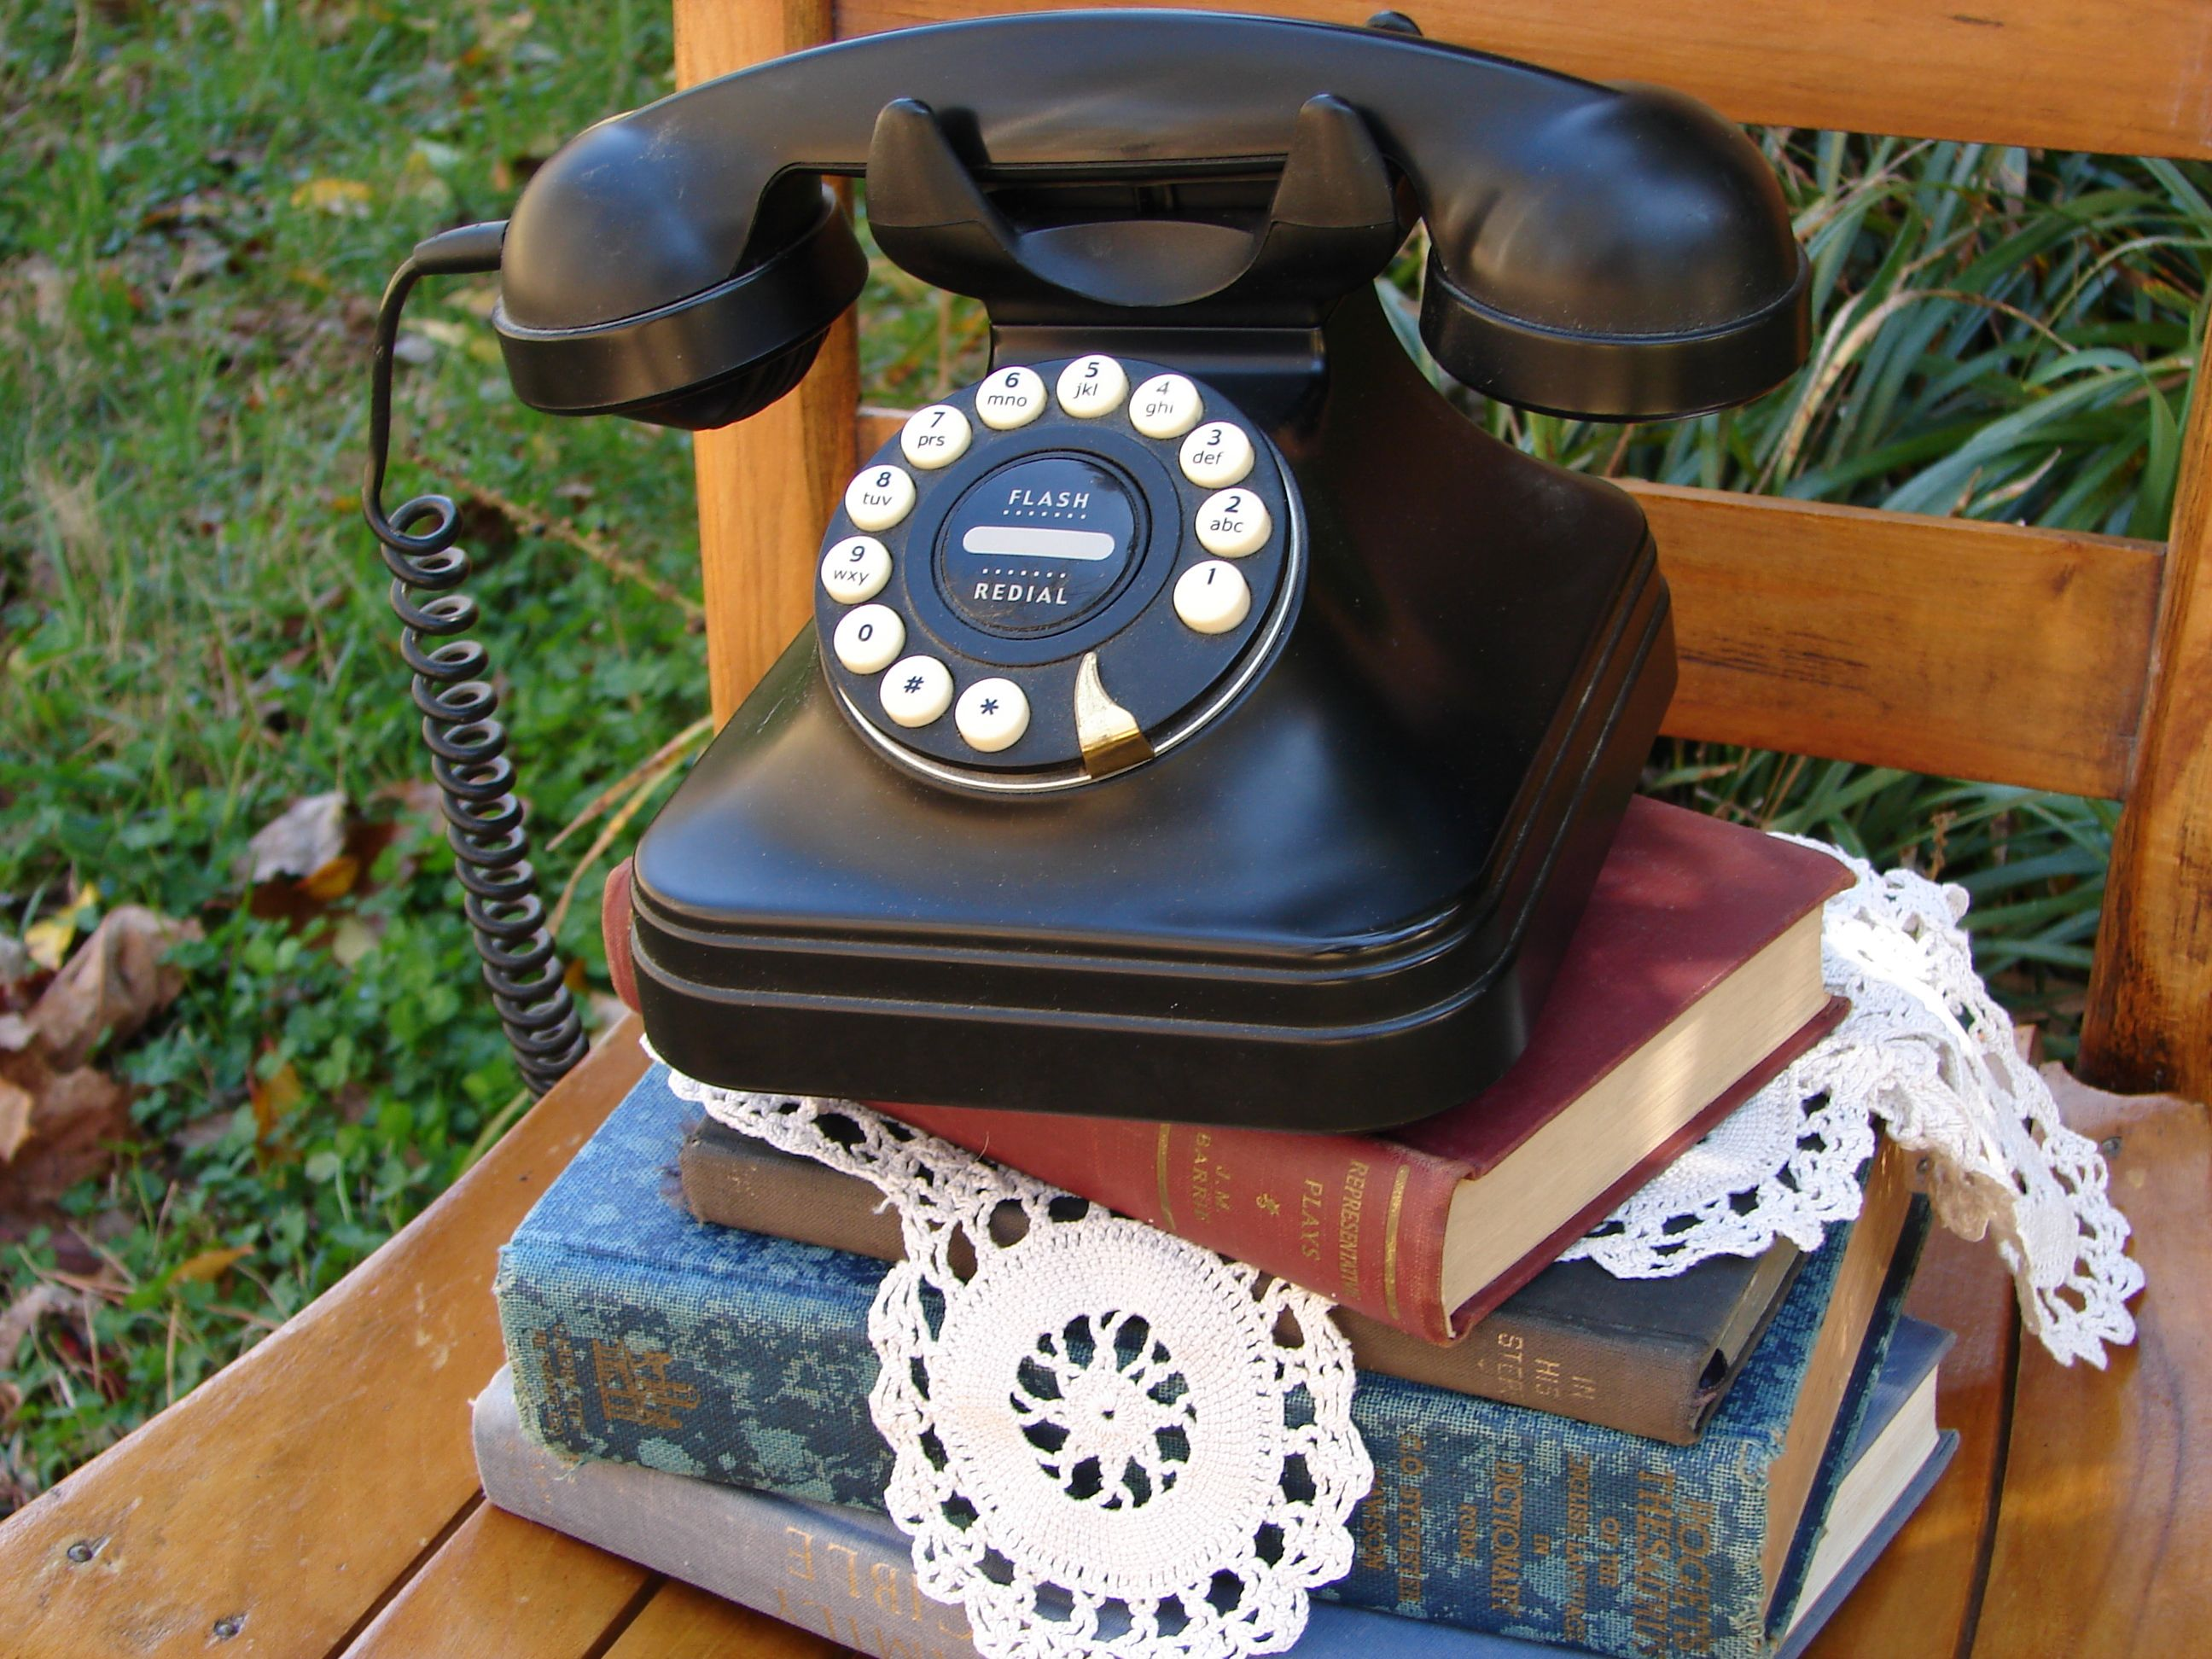 Vintage books and vintage-inspired phone from The Vintage Chicks Rentals